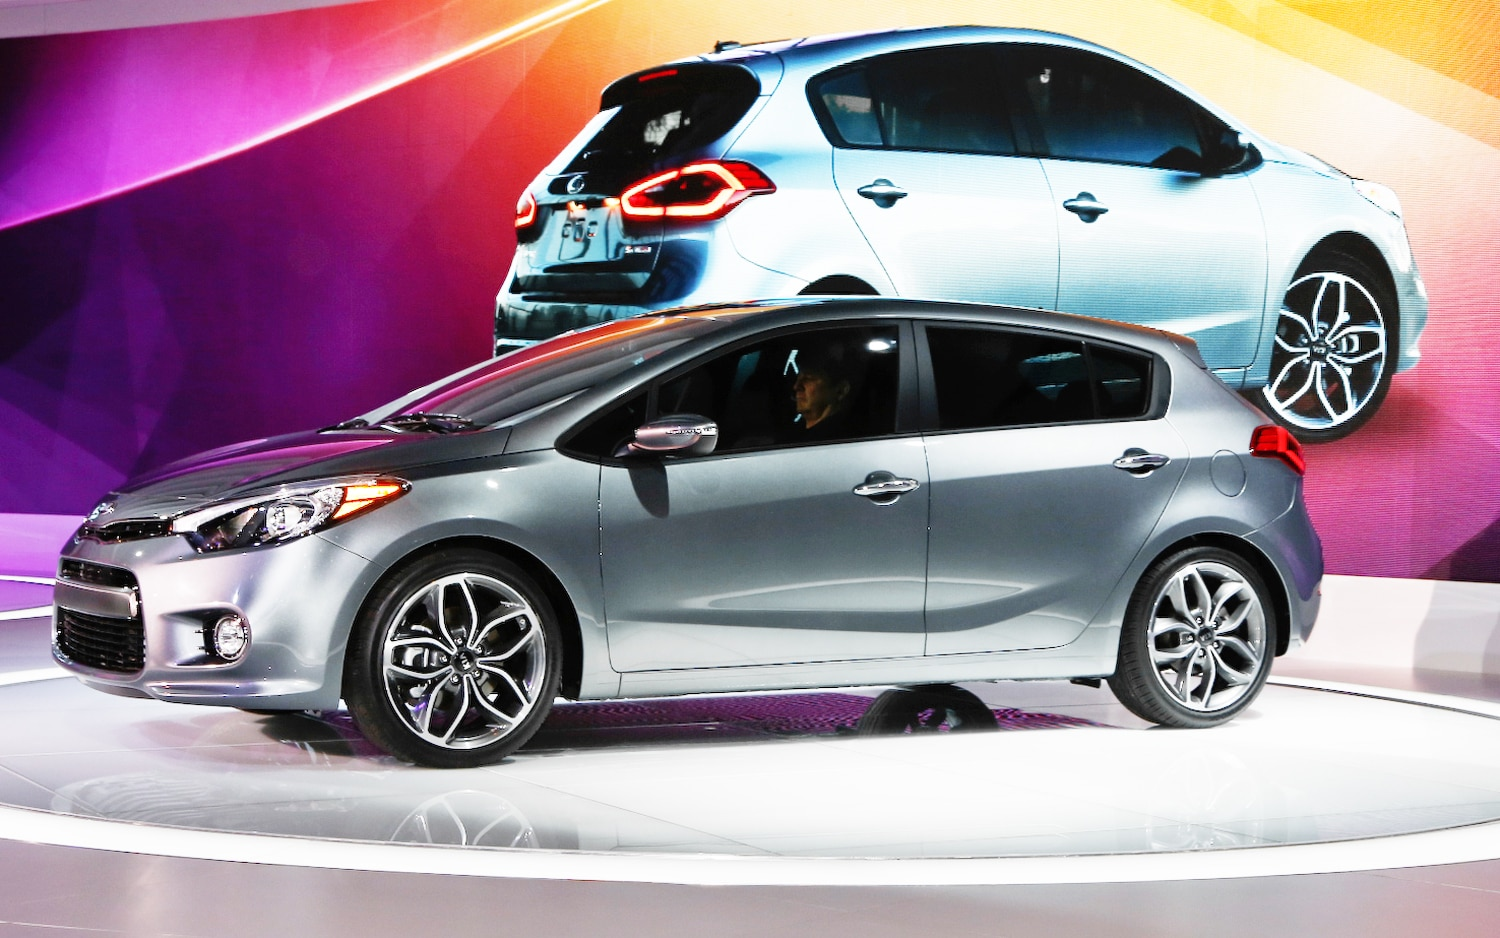 2014 Kia Forte 5 Door Front Left Side View1